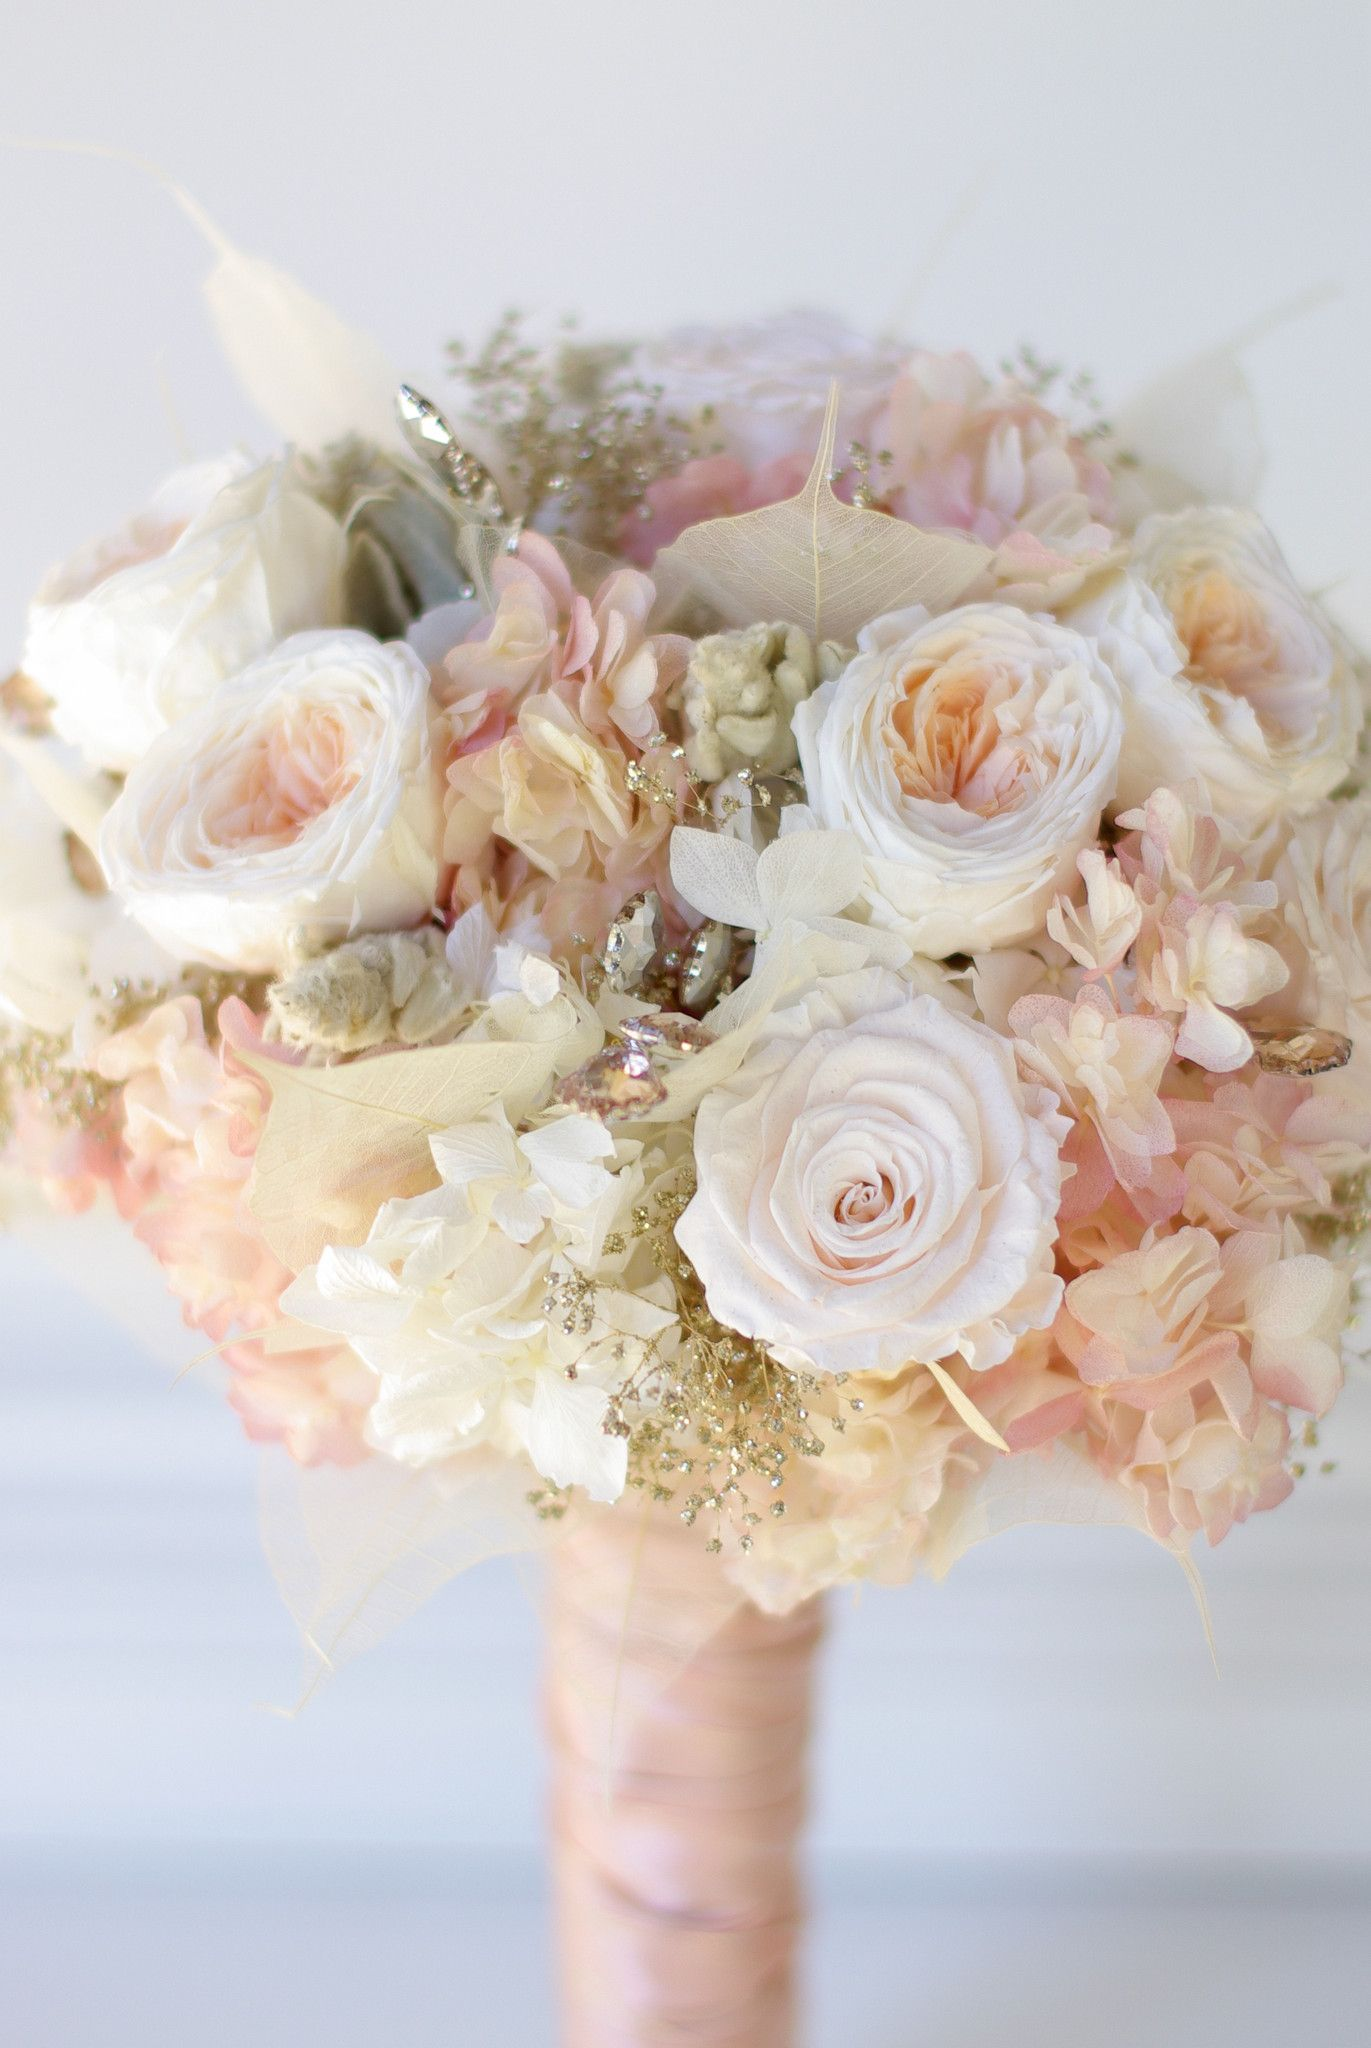 pure pink rose bouquet - photo #14